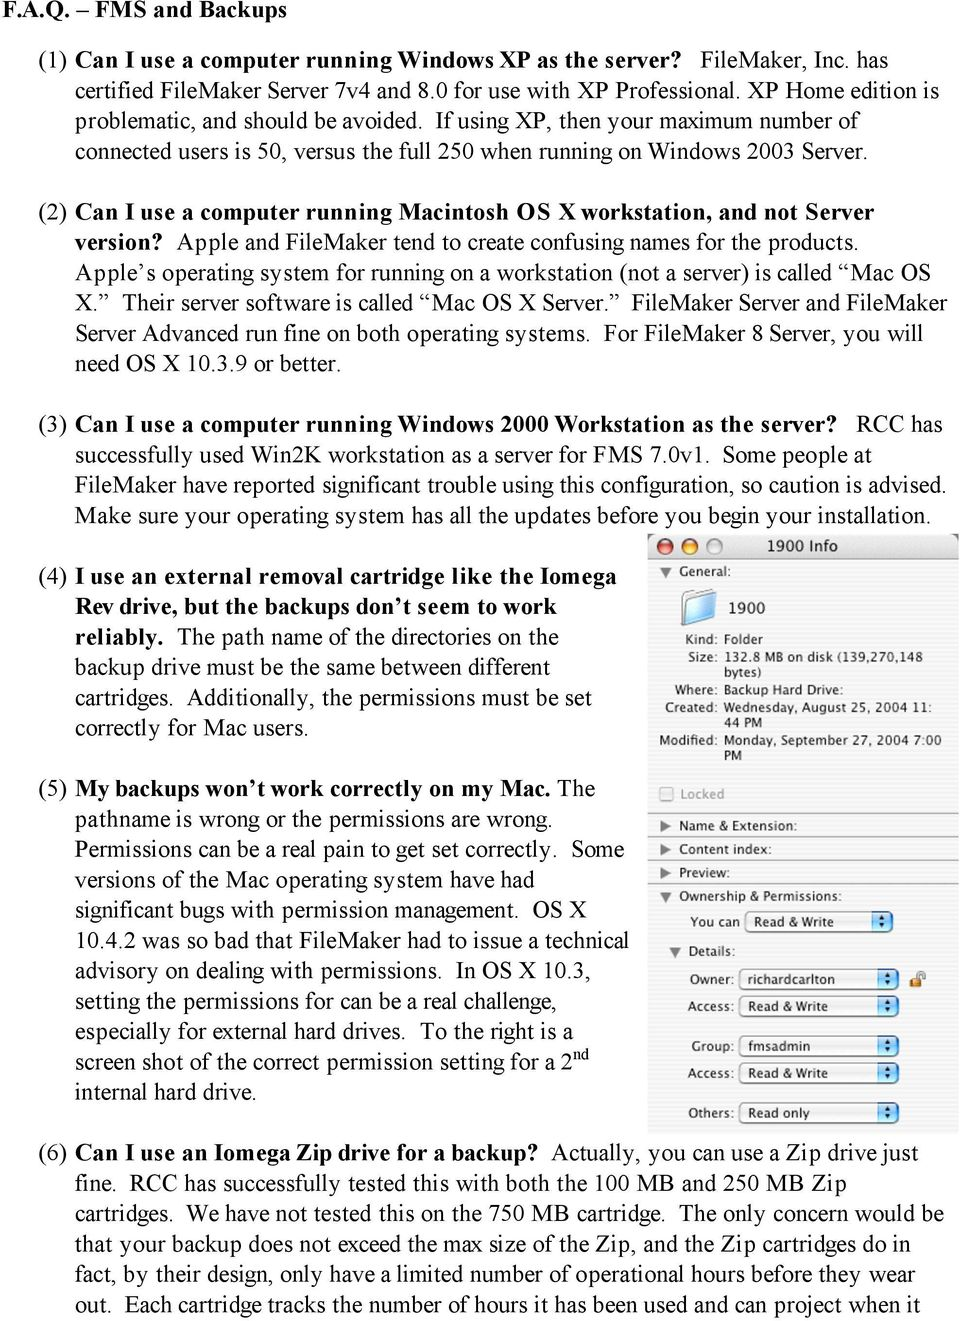 (2) Can I use a computer running Macintosh OS X workstation, and not Server version? Apple and FileMaker tend to create confusing names for the products.